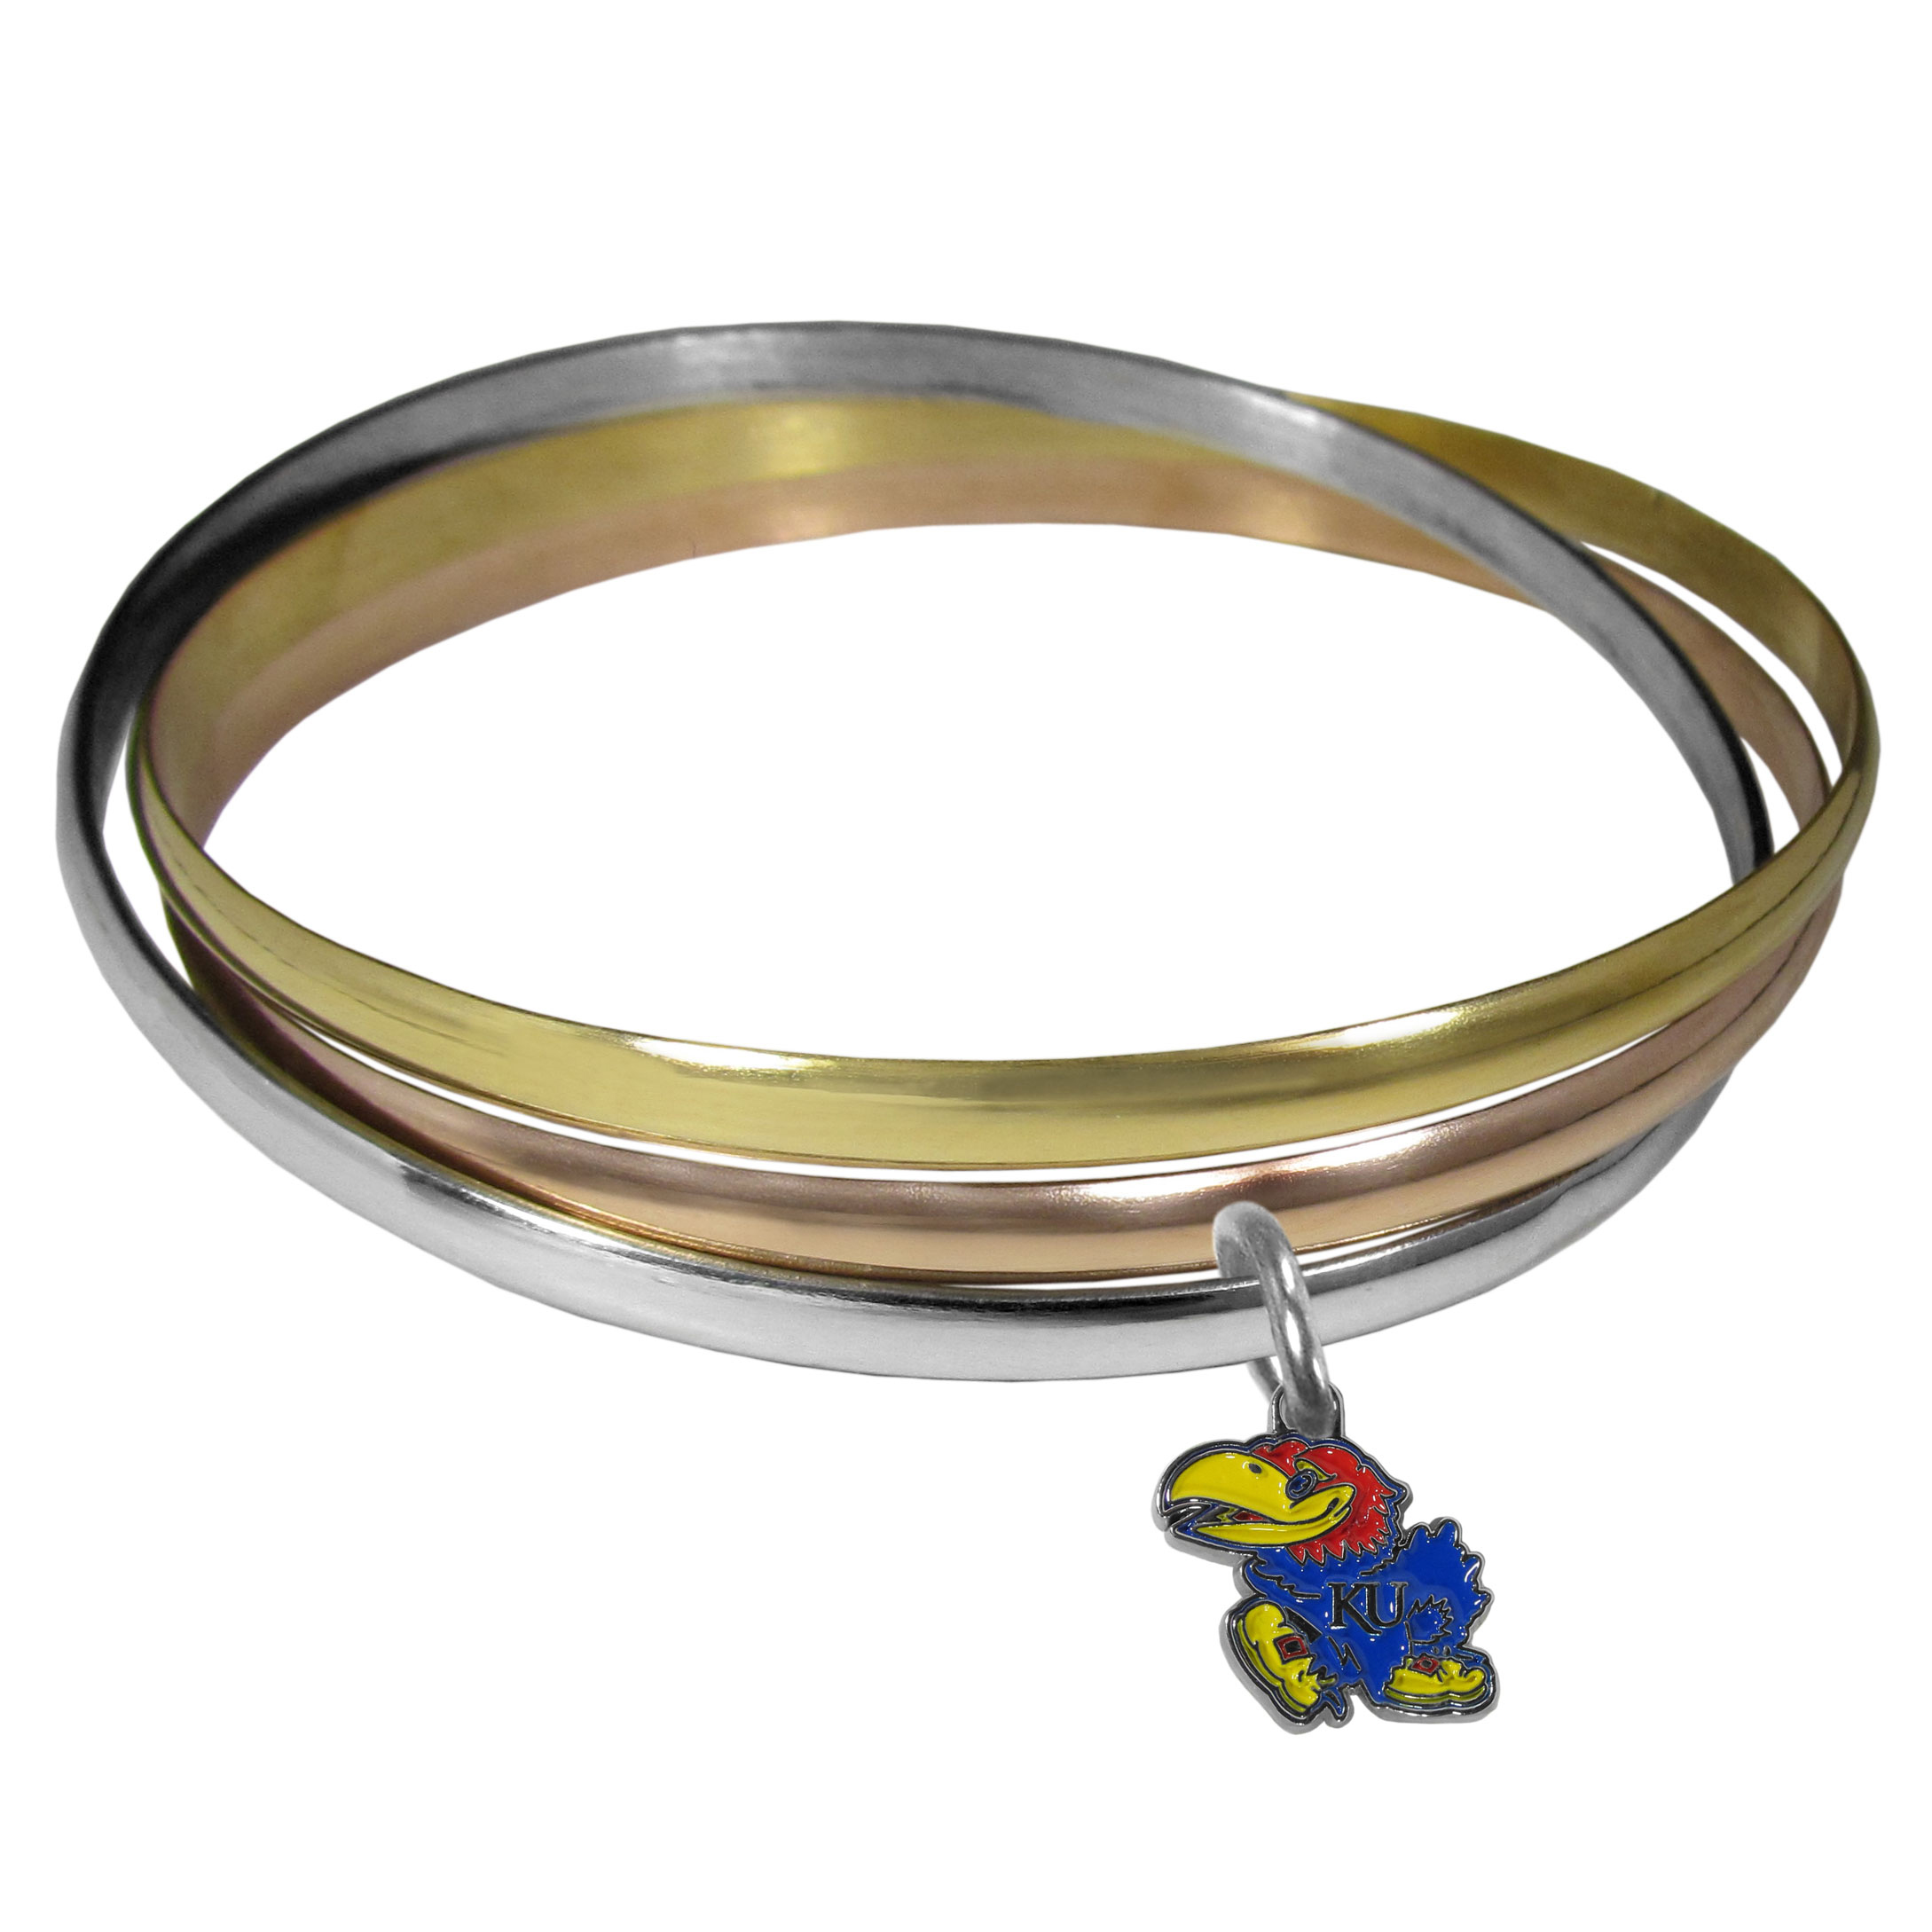 Kansas Jayhawks Tri-color Bangle Bracelet - These beautiful bangles come in a interlocking style and feature a fully cast Kansas Jayhawks charm with enameled team colors. The bracelet has a silver toned bangle, gold tone bangle and brass toned bangle.